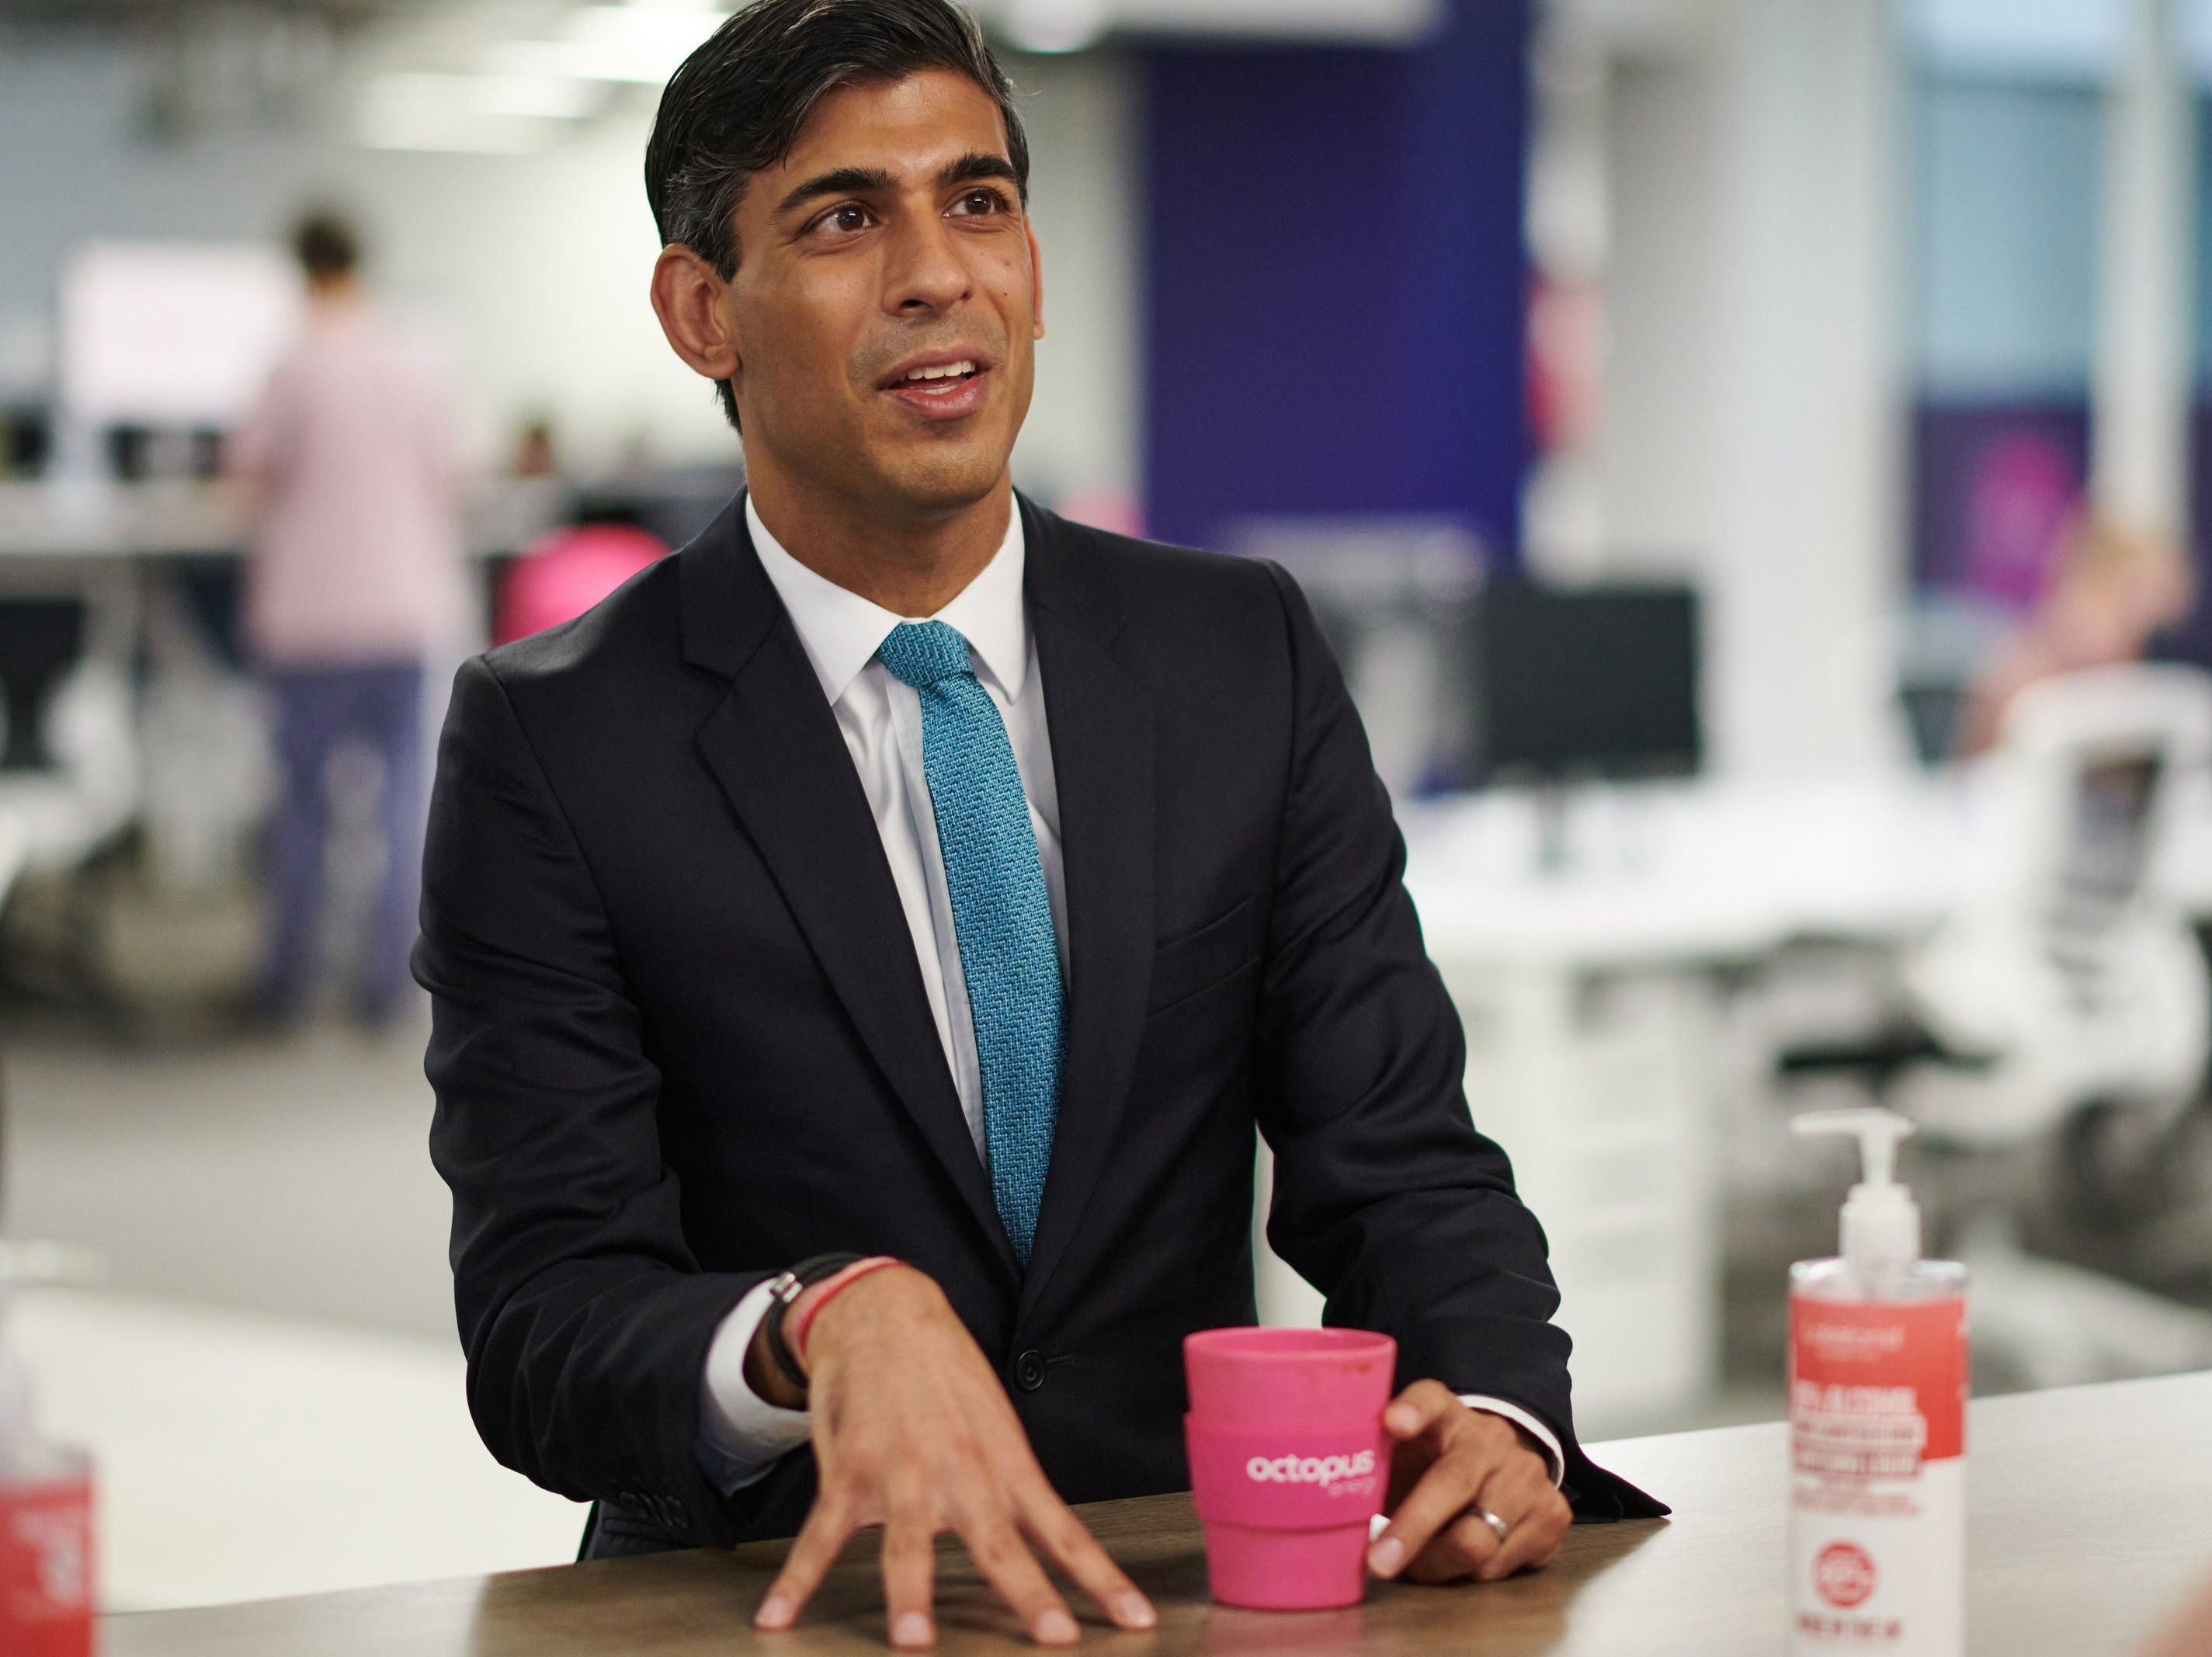 Rishi Sunak The Chemist S Son Who May Have Found The Formula For Leadership The Independent